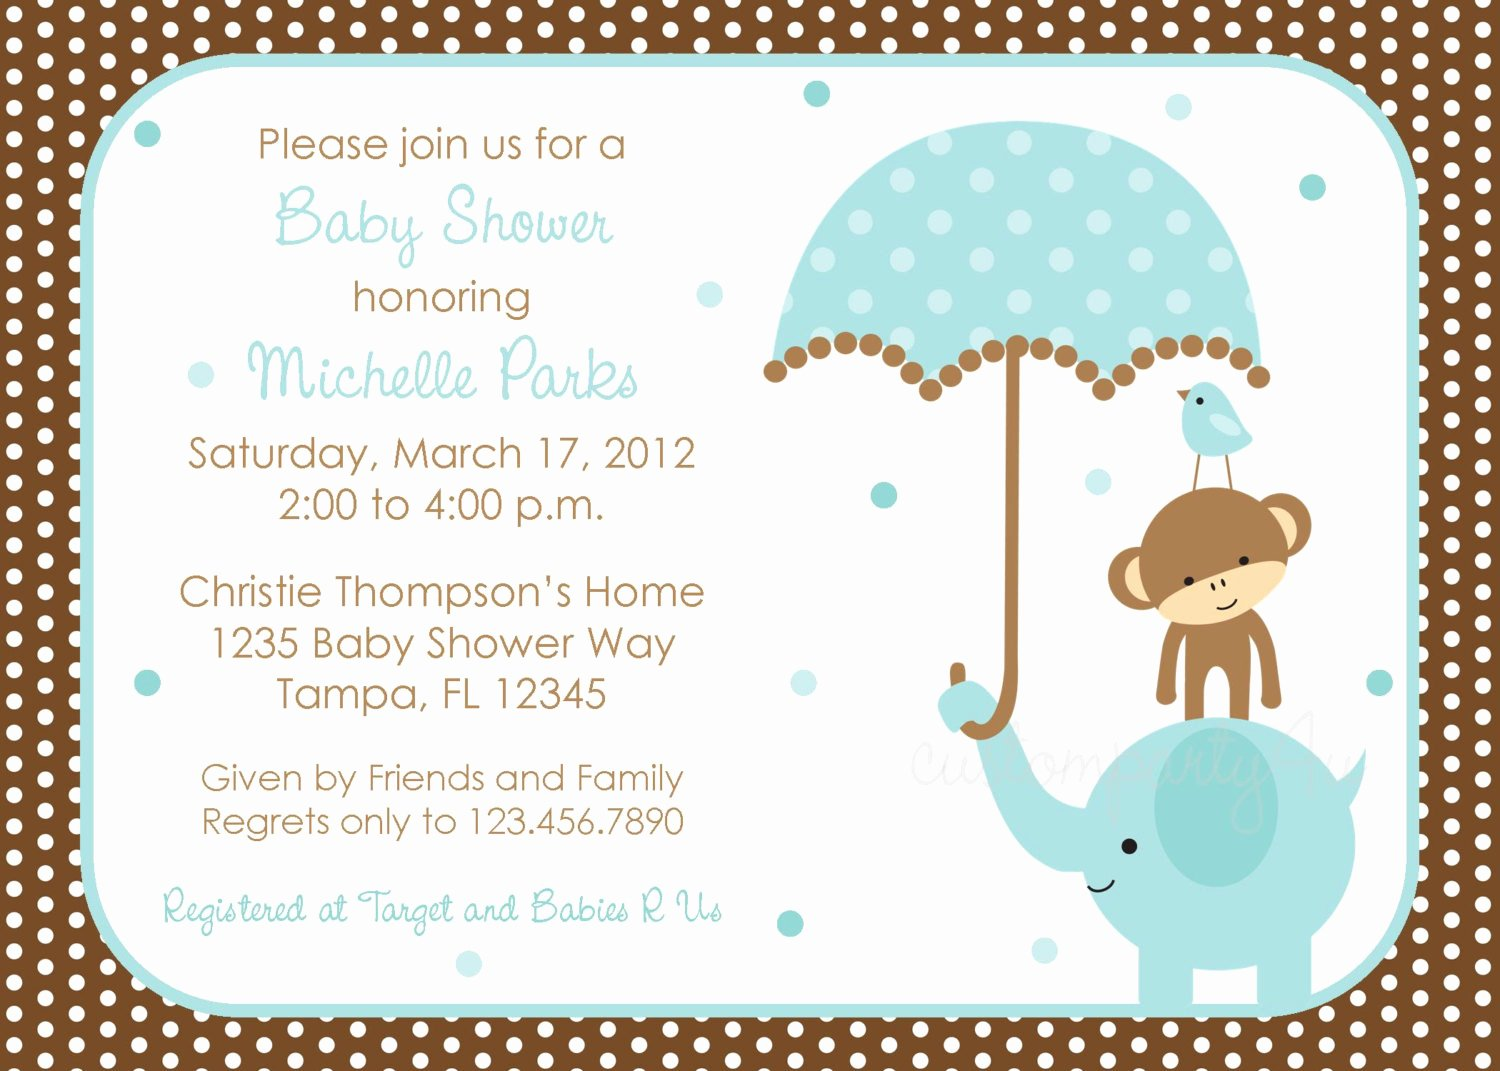 Baby Boy Invitation Template Lovely Free Baby Boy Shower Invitations Templates Baby Boy